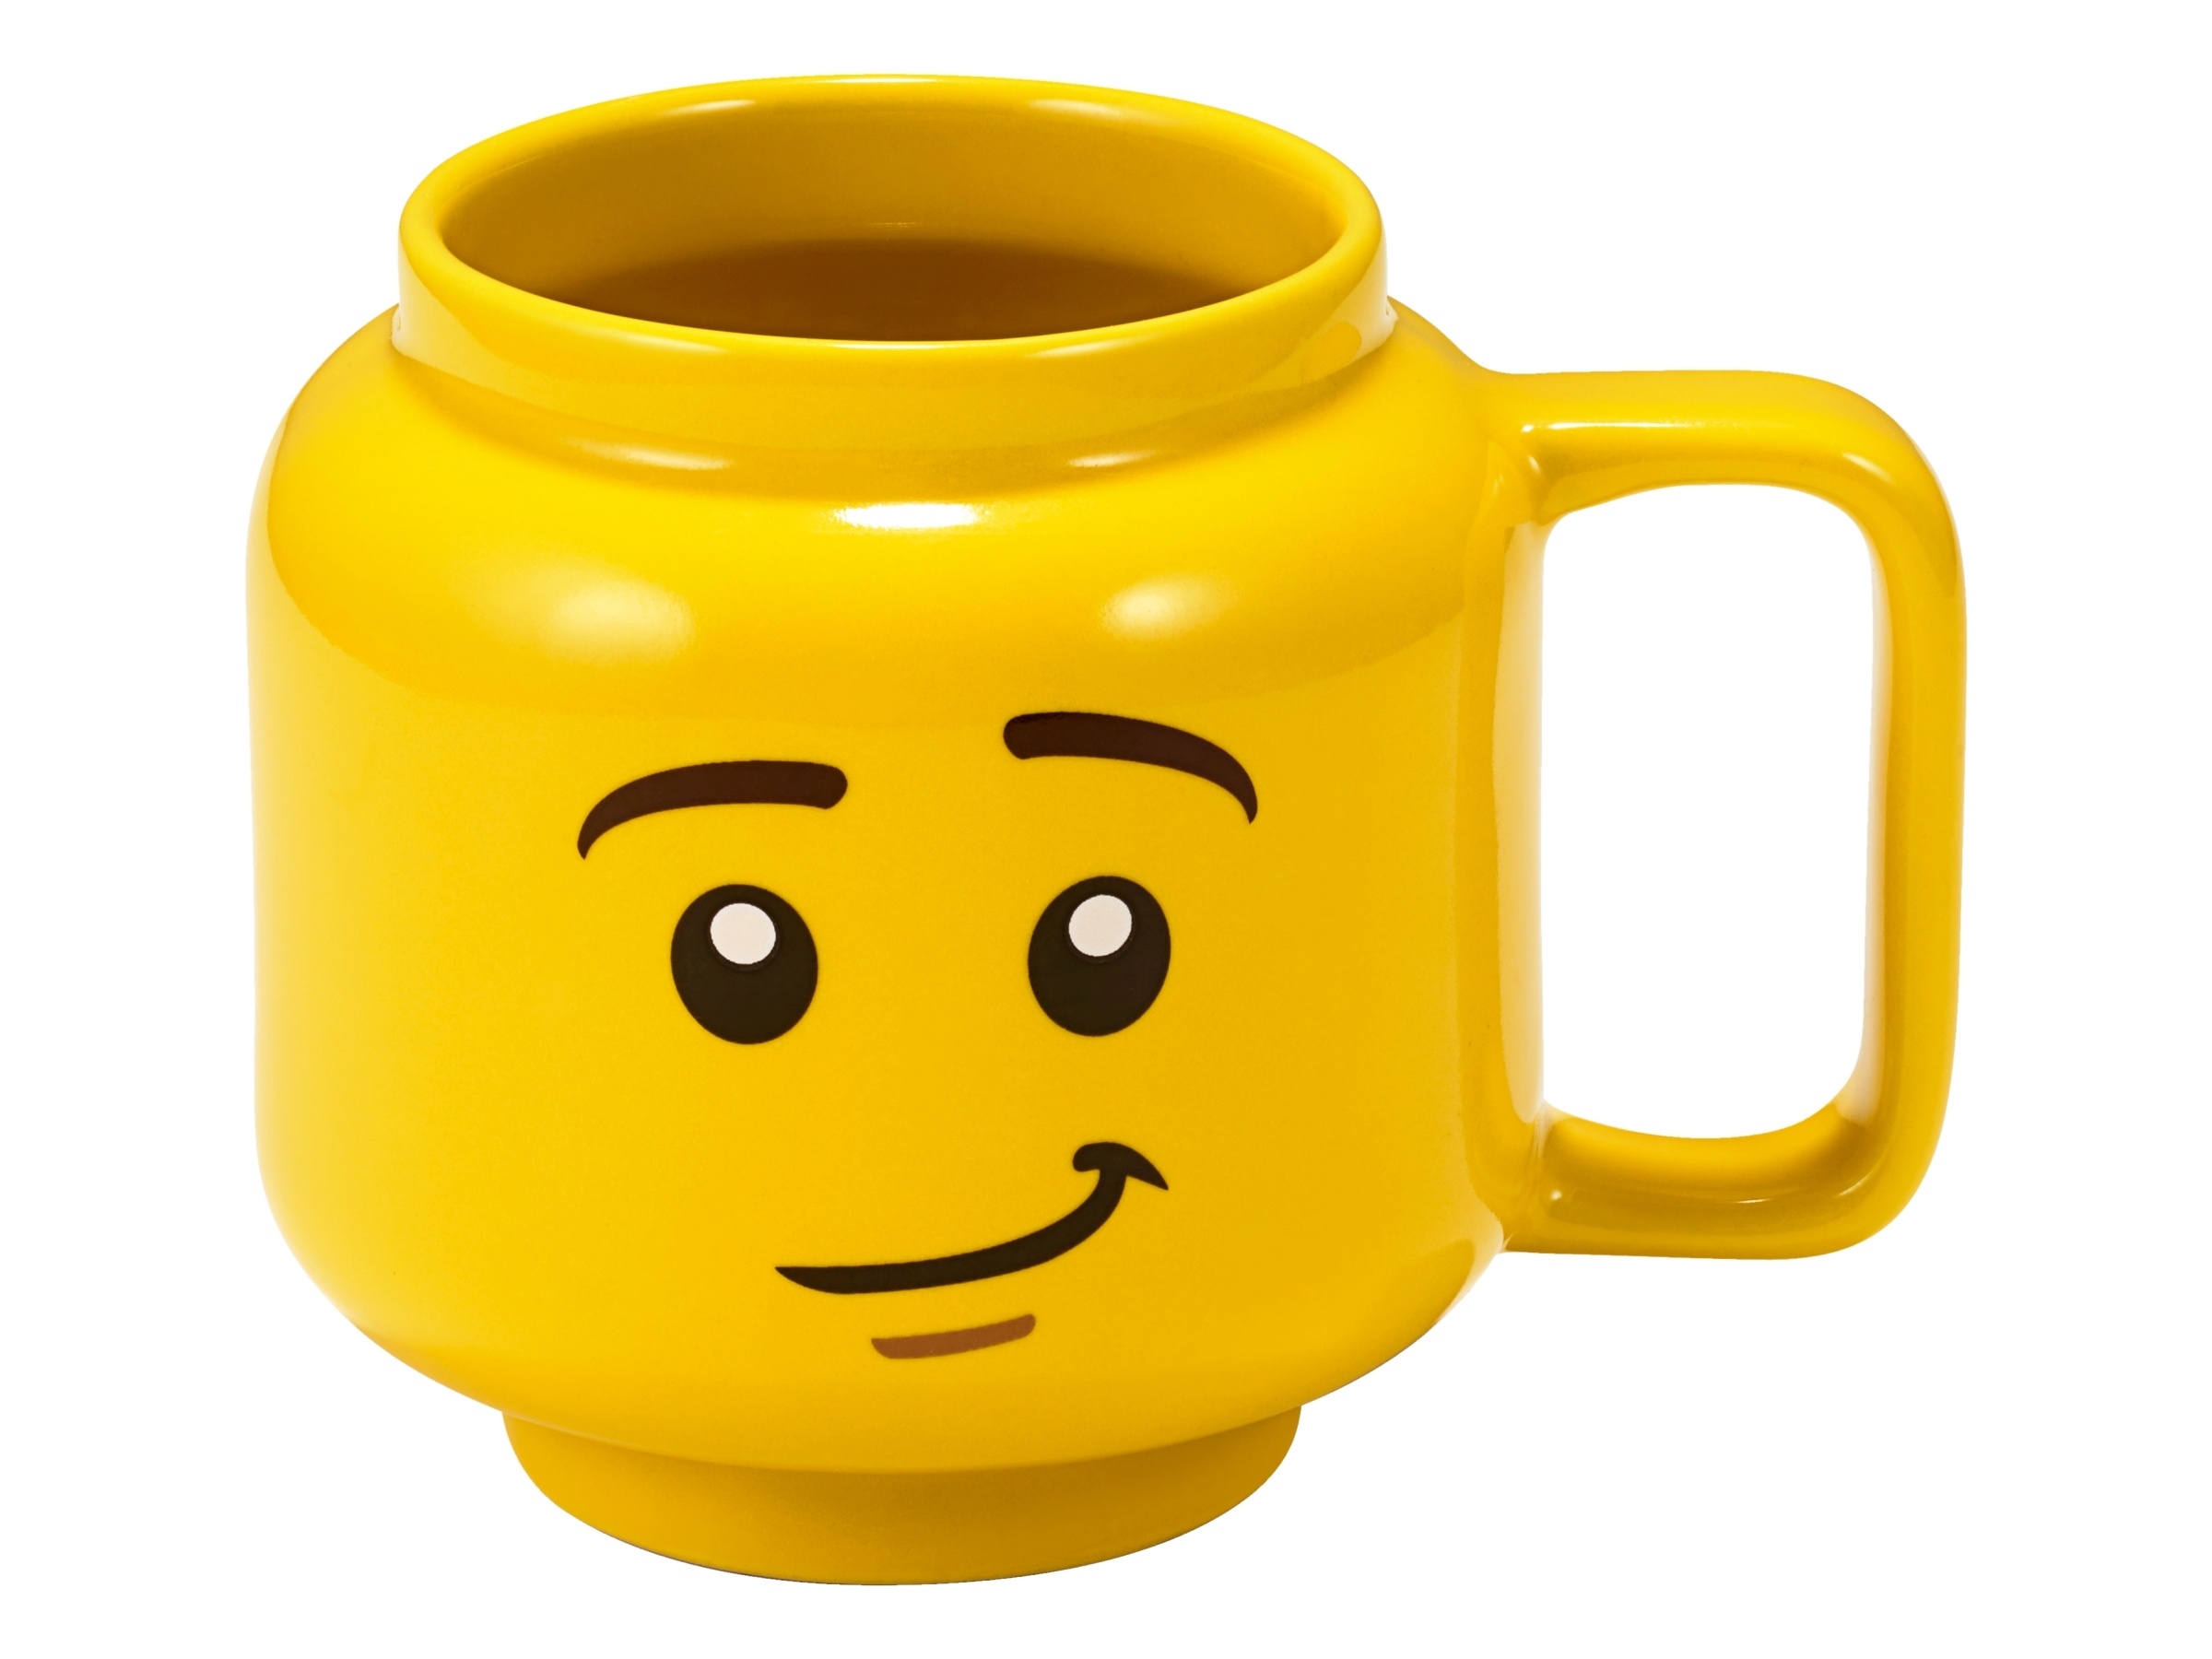 Lego Minifigure Ceramic Mug 853910 Miscellaneous Buy Online At The Official Lego Shop Us